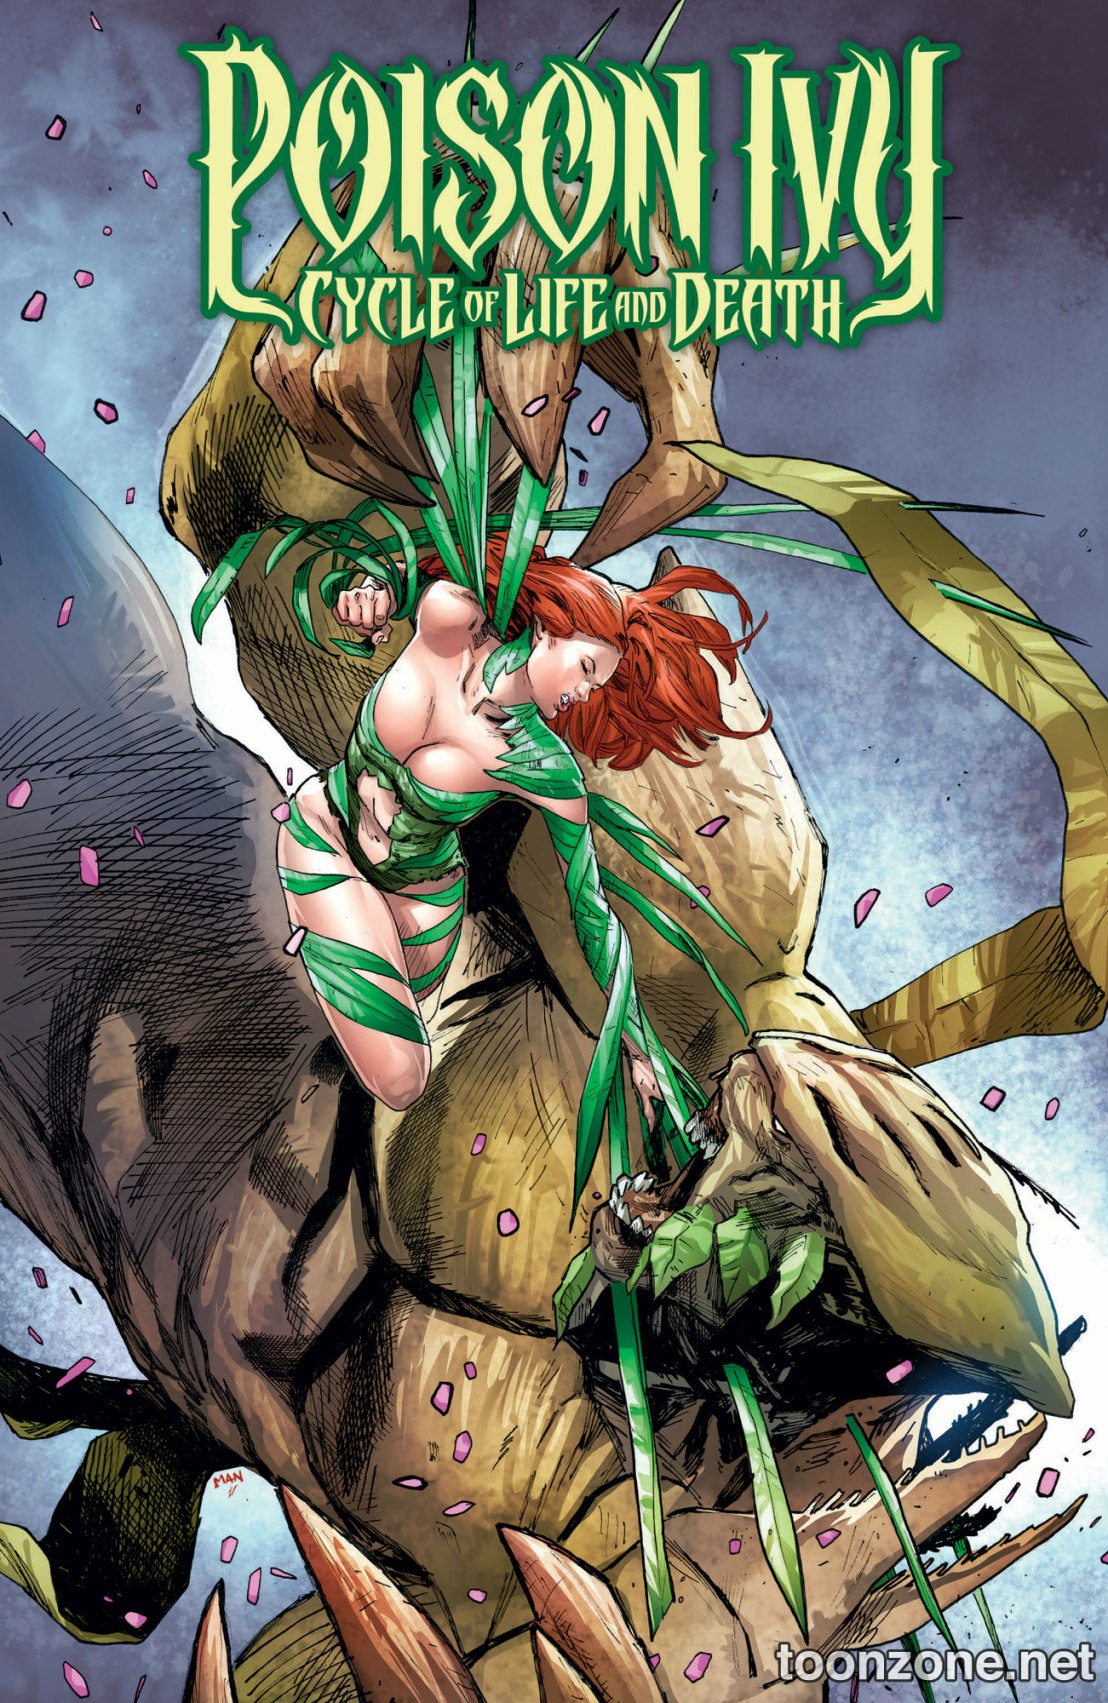 Poison Ivy Cycle of Life and Death #6 Cover by Clay Mann Ulises Arreola.jpg